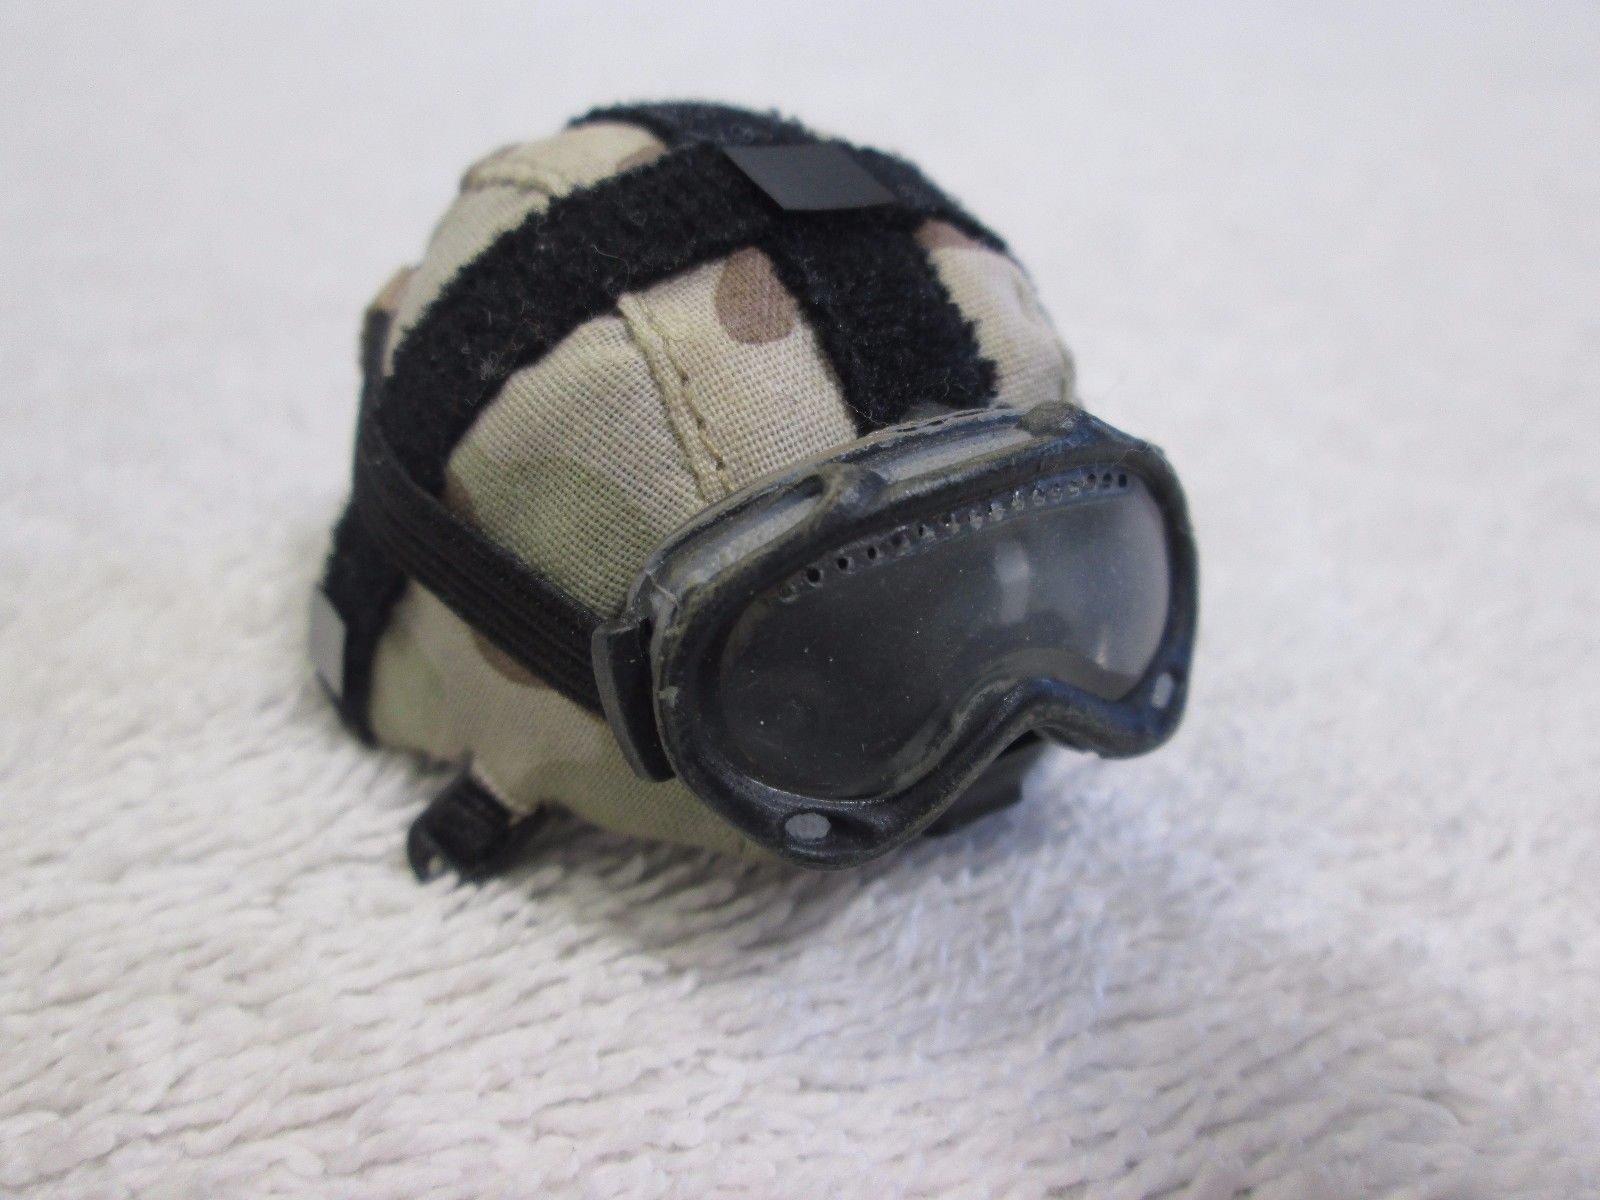 Navy Seal VBSS Helmet + Goggles PCU Ver. Accessory - Hot Toys 2007